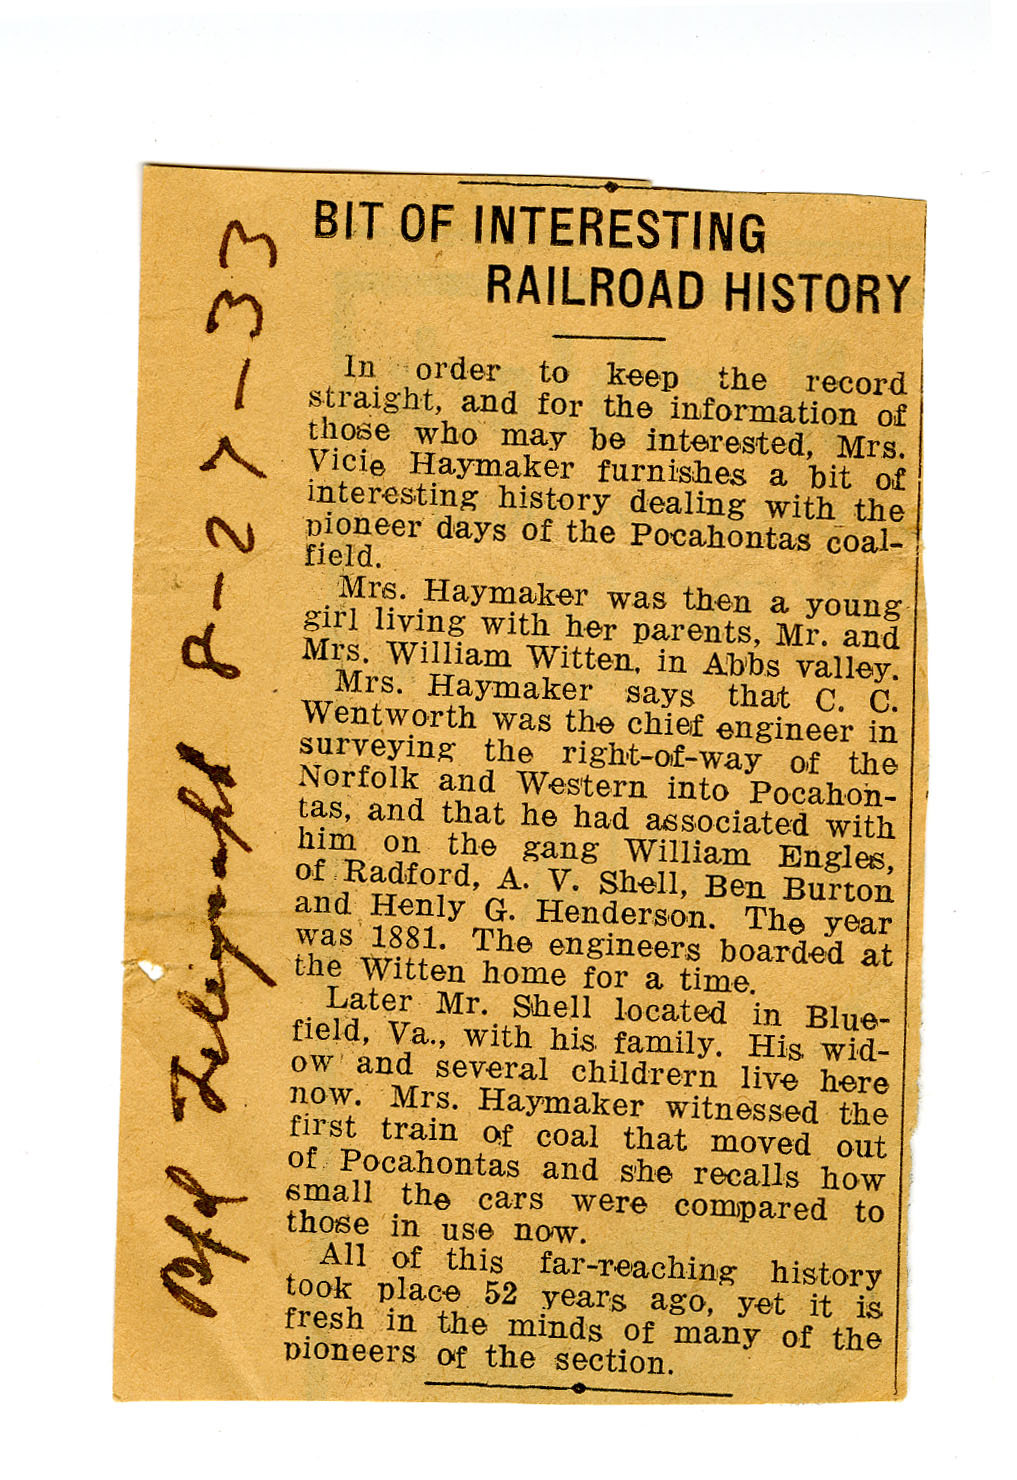 Ms1959_001_Newspaperclipping_Aug27_1933.jpg